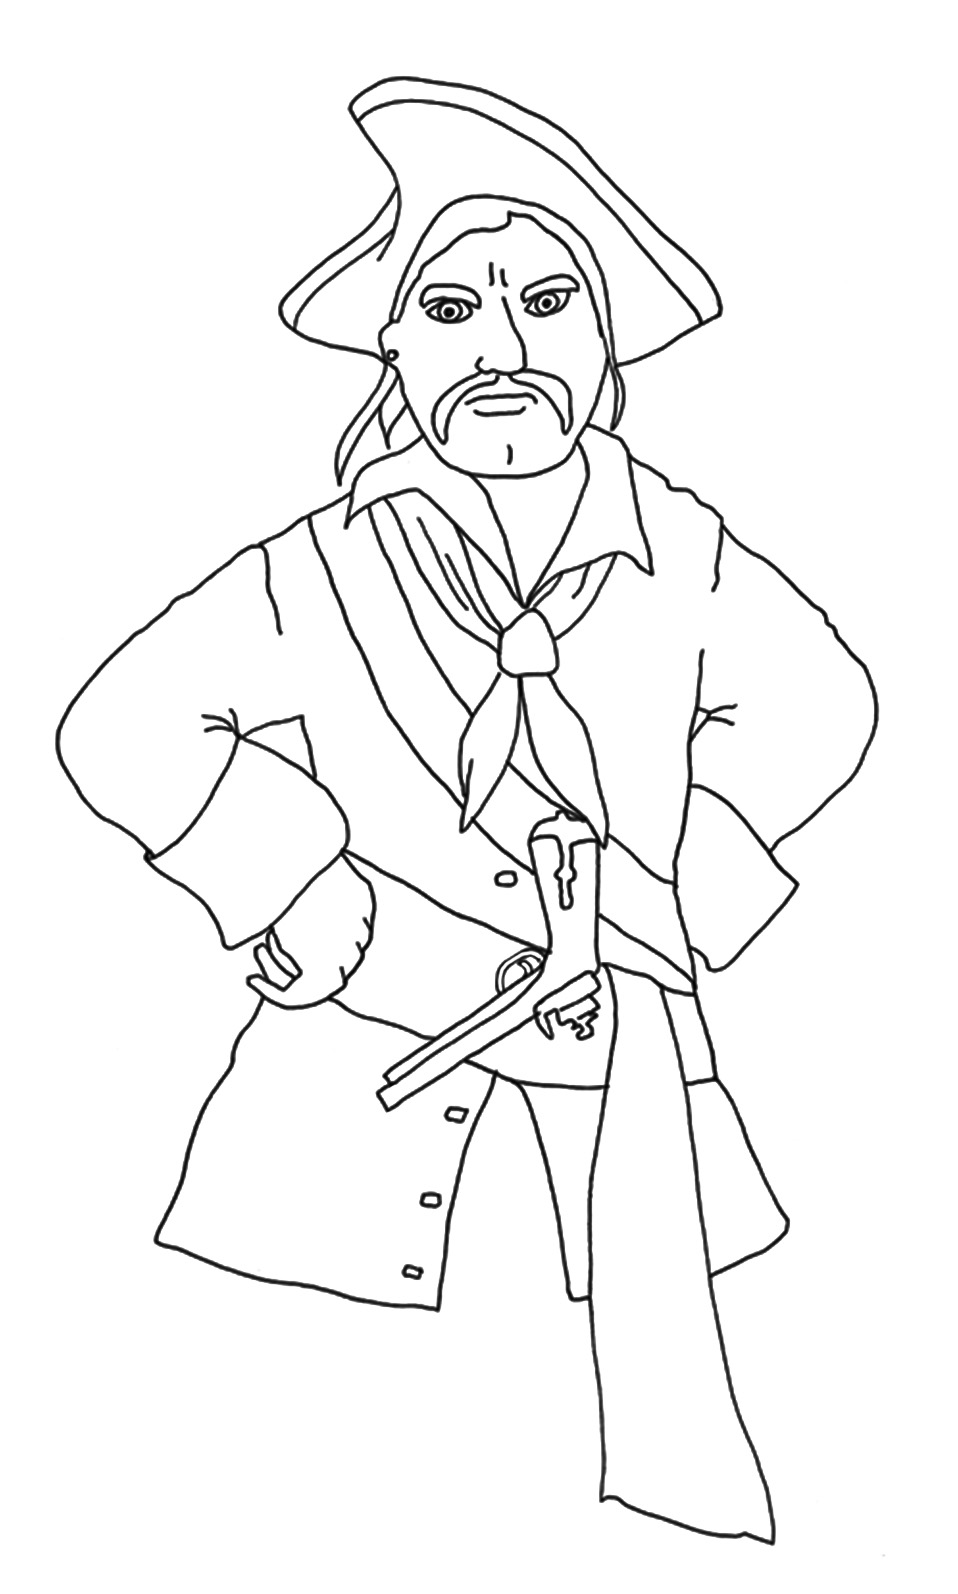 pirate coloring pages pirate ship coloring pages for adults coloring pages for coloring pages pirate